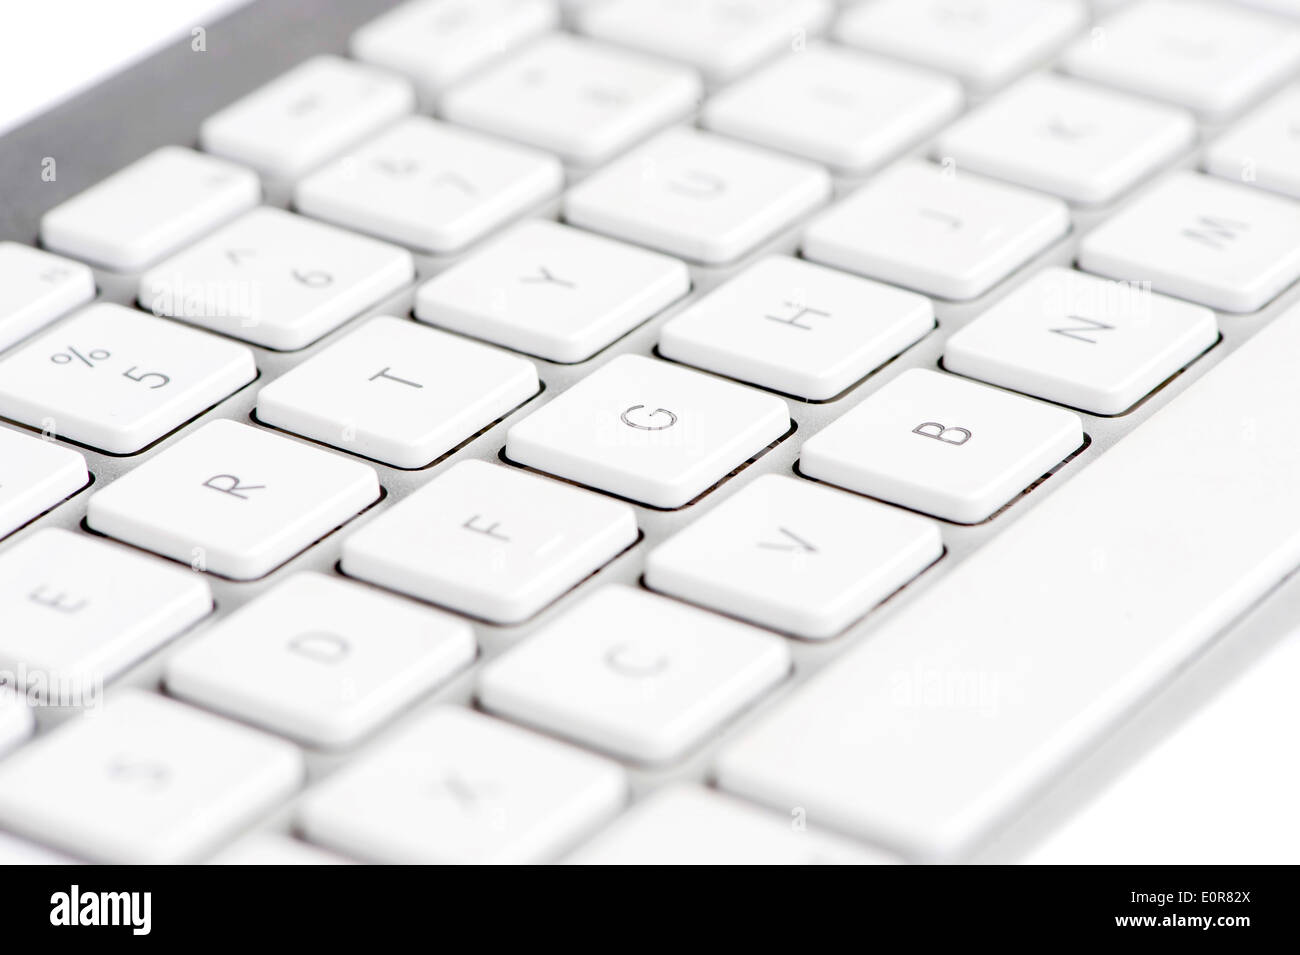 Apple mac white Keyboard focused on the letter G - Stock Image